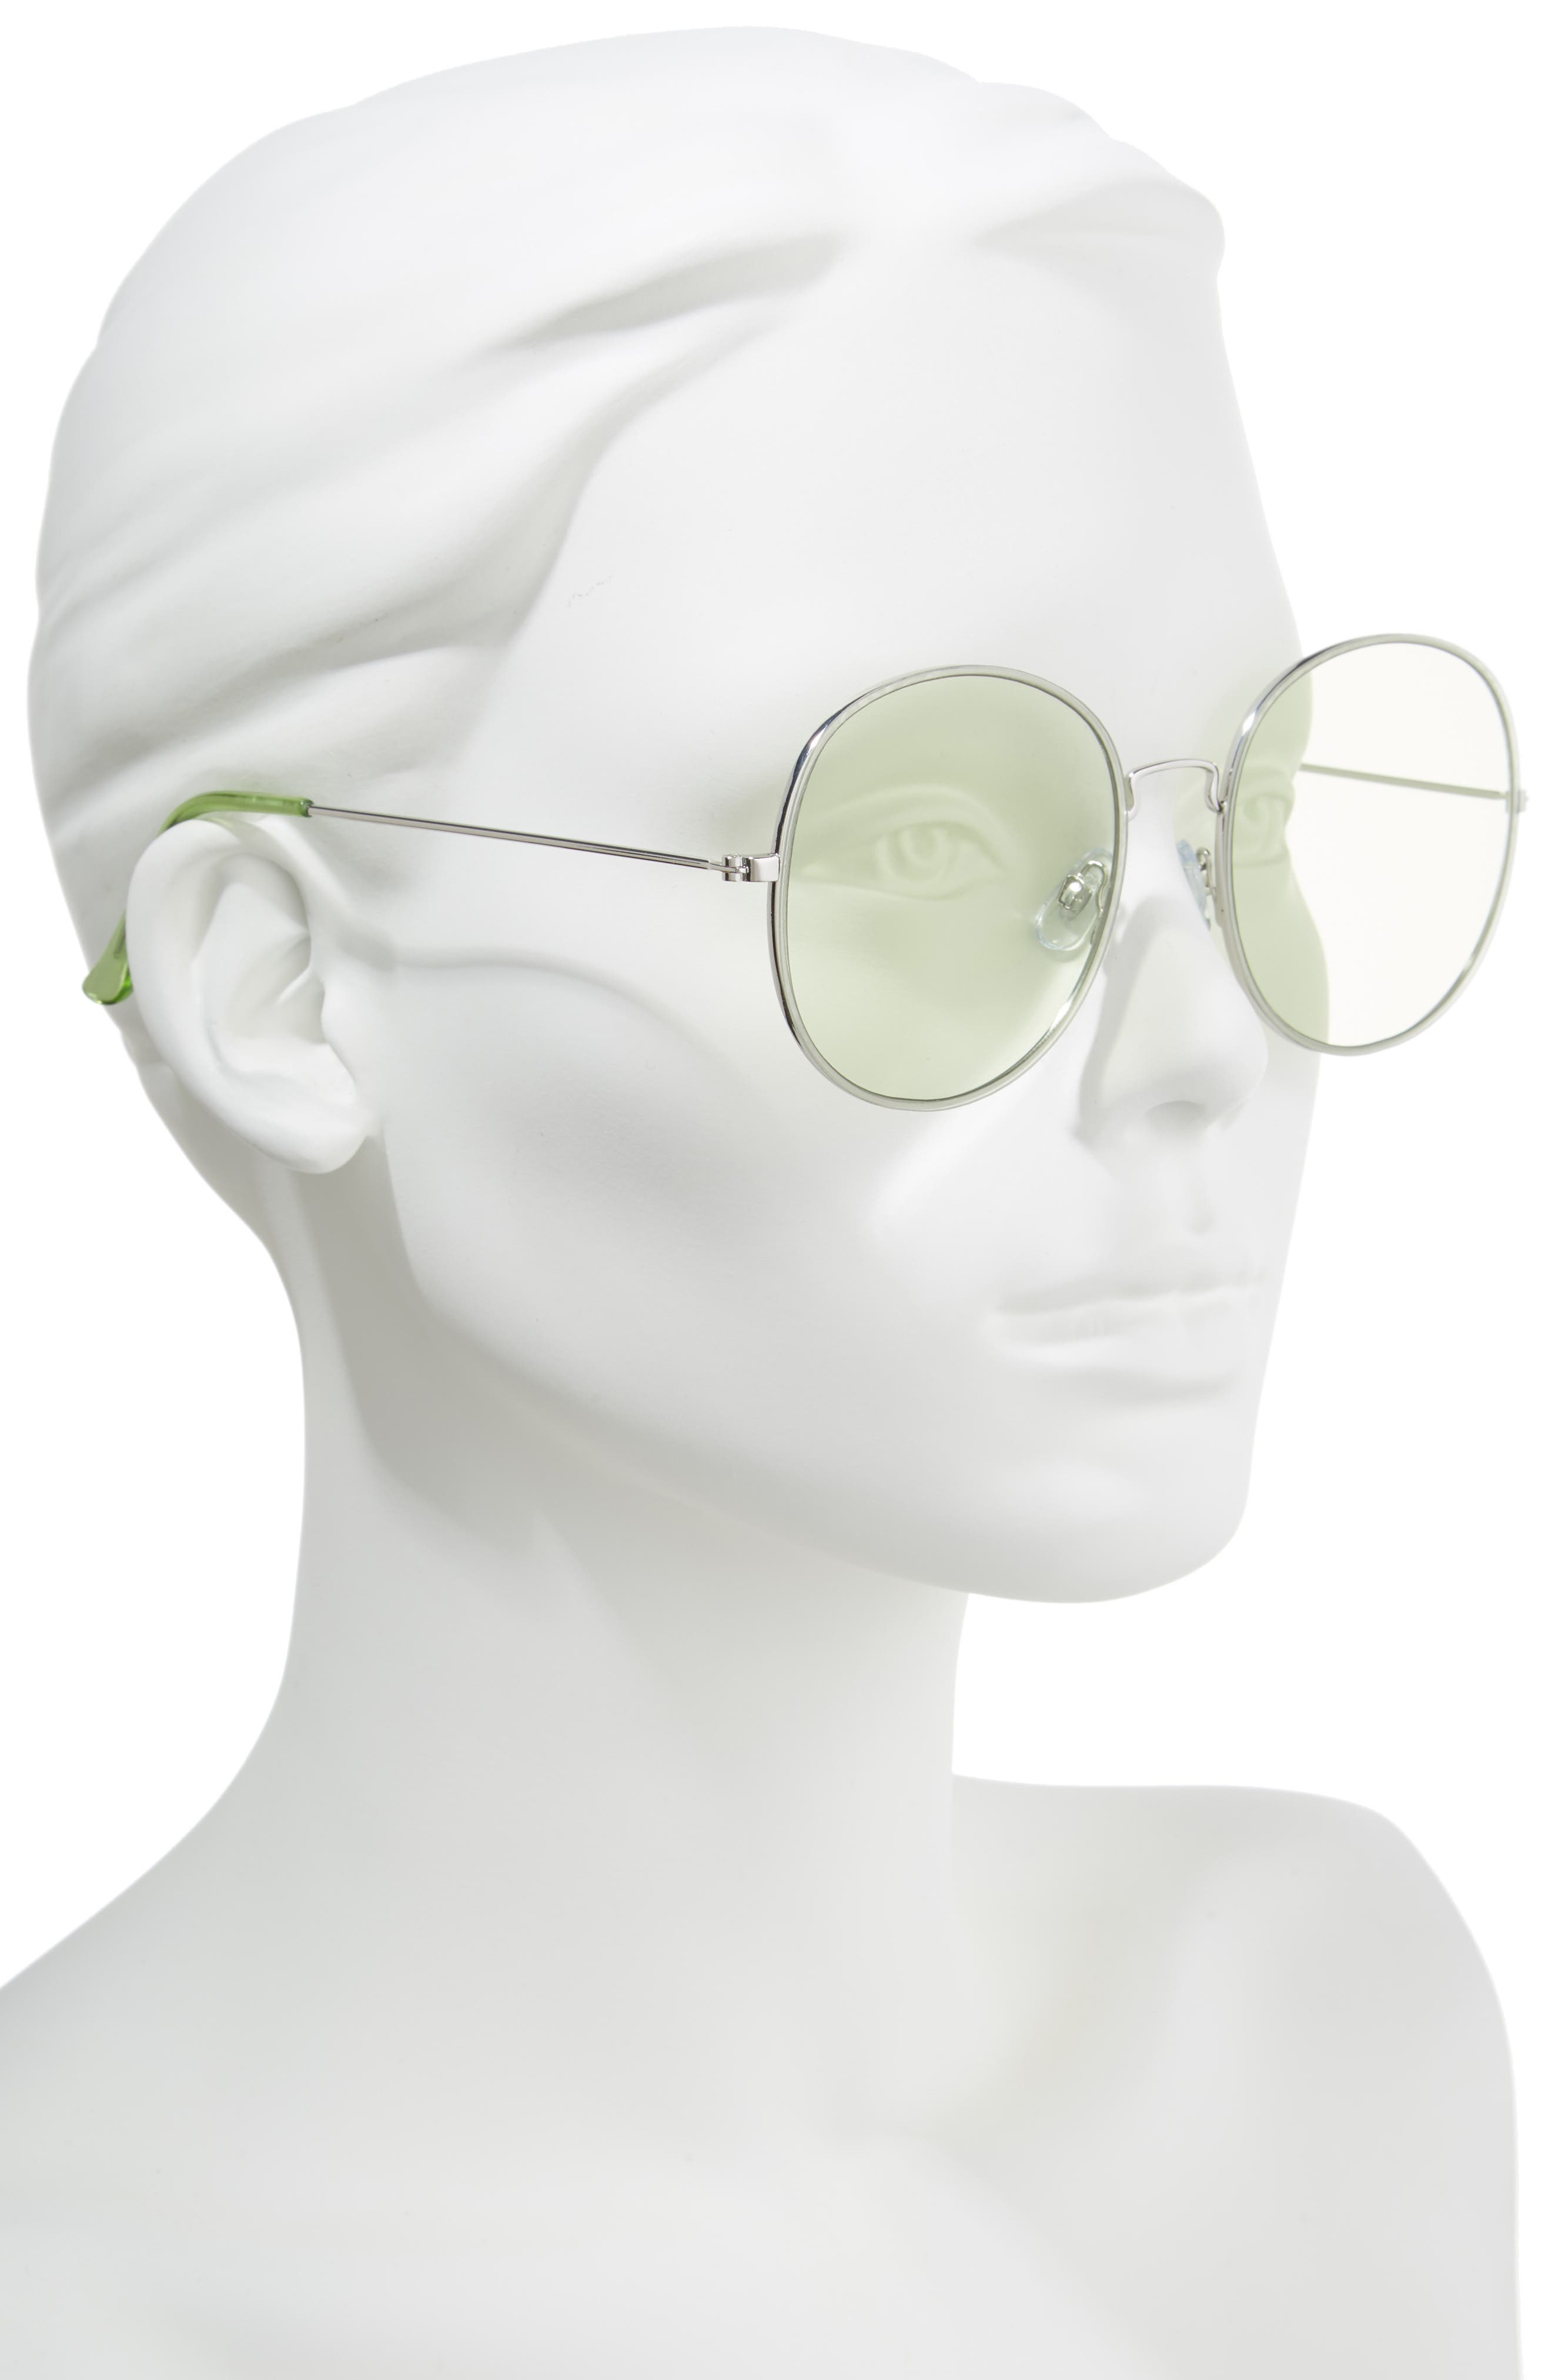 57mm Flat Round Sunglasses,                             Alternate thumbnail 2, color,                             Green